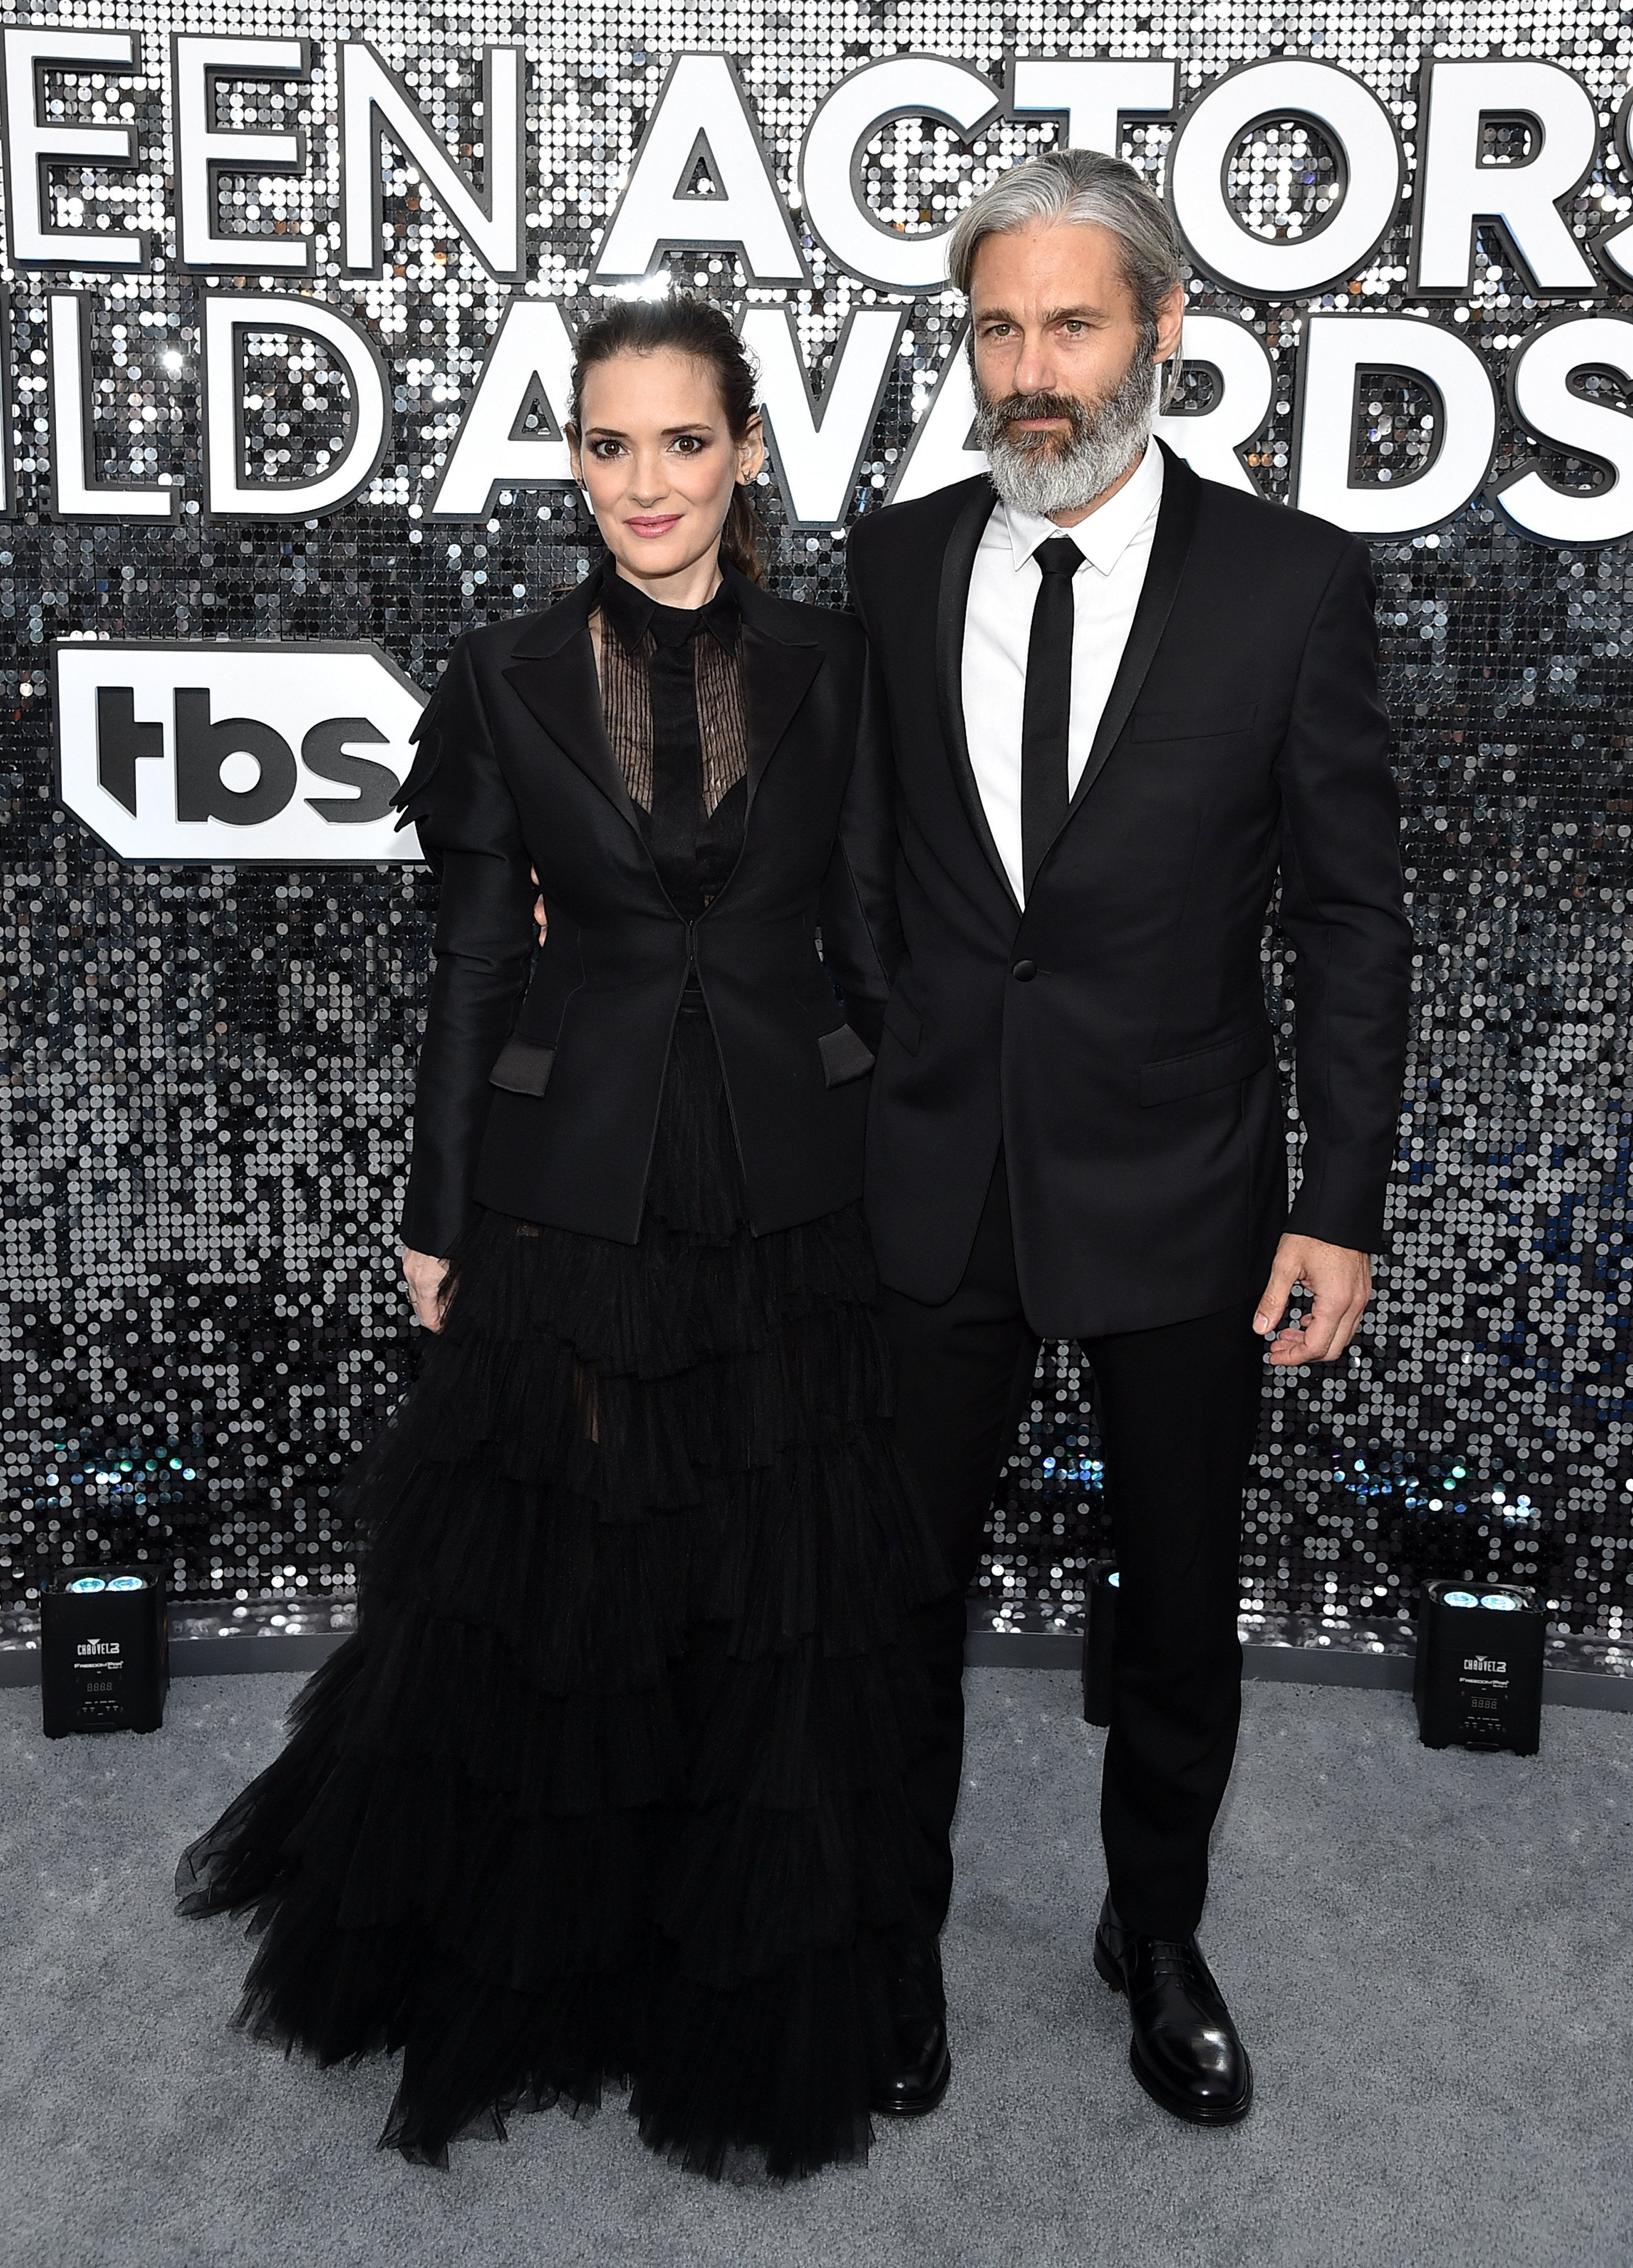 Winona Ryder and Scott Mackinlay Hahn attend the 26th Annual Screen Actors Guild Awards at The Shrine Auditorium on January 19, 2020, in Los Angeles, California. | Source: Getty Images.